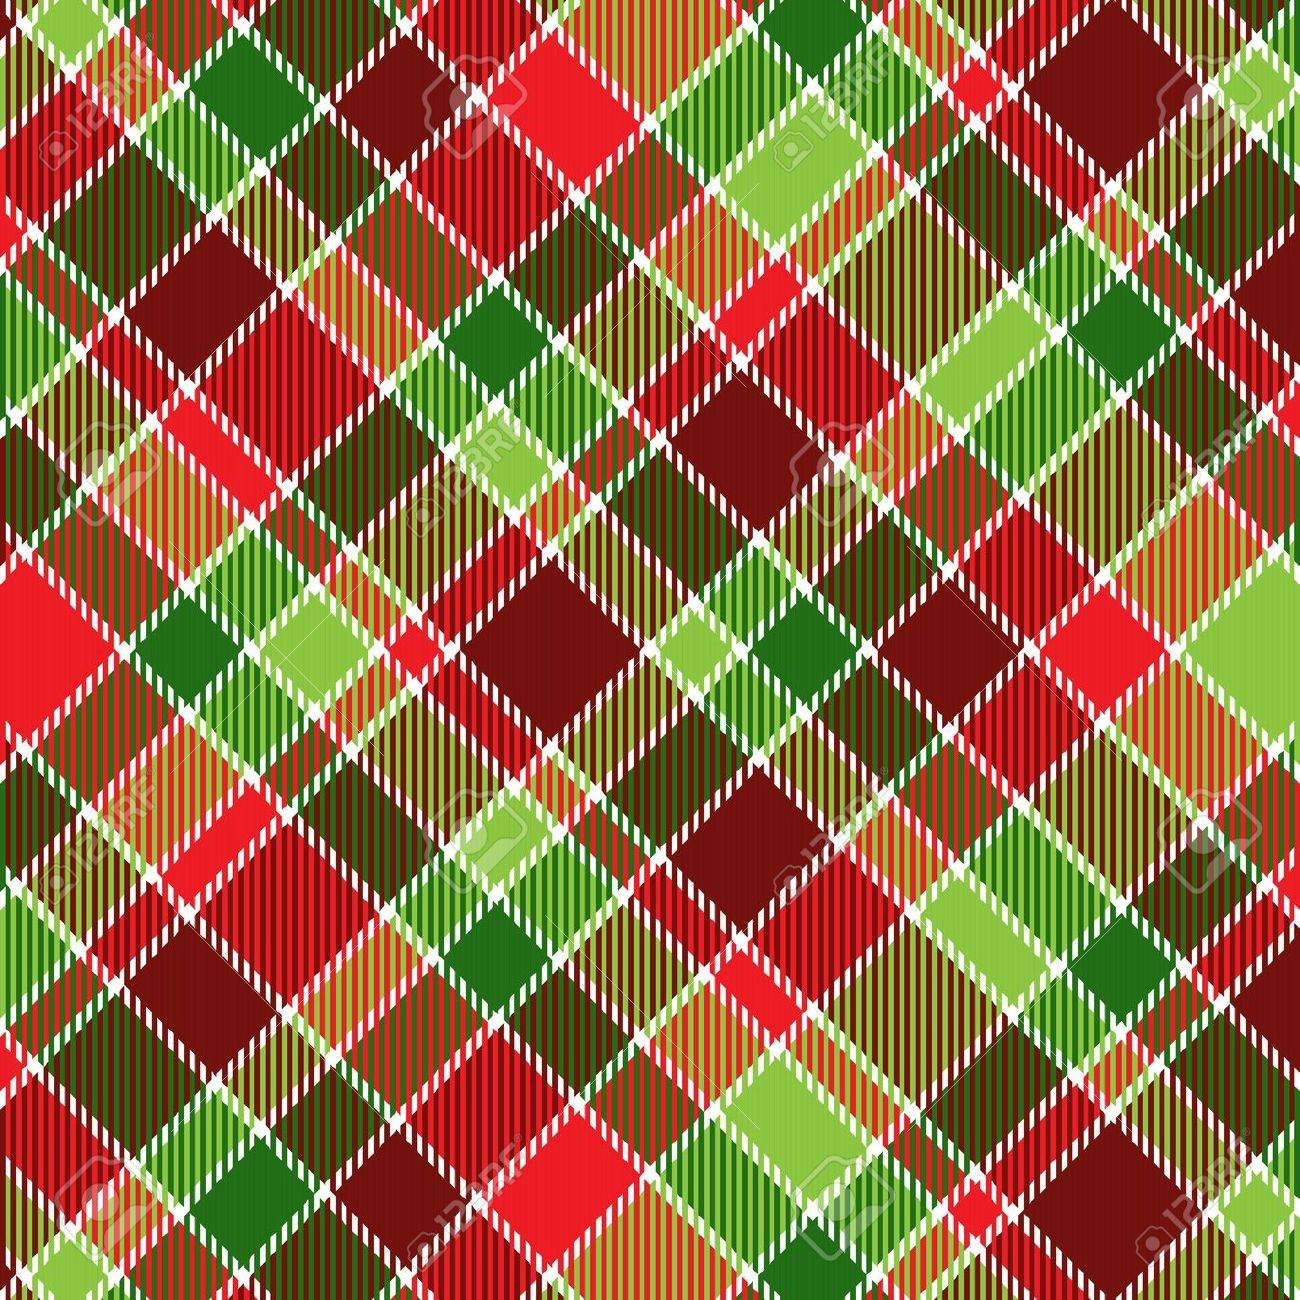 Christmas Colors.A Plaid Background Pattern In Christmas Colors